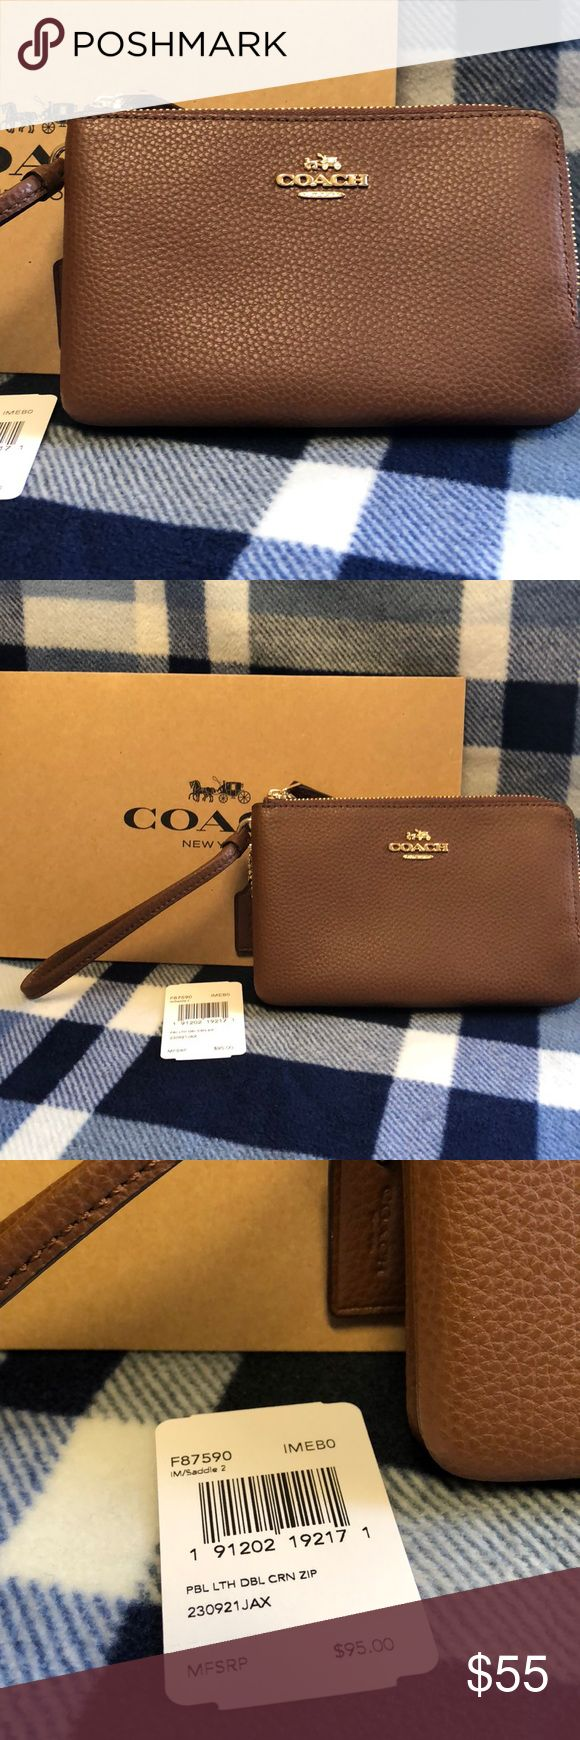 Brown Coach Wristlet Brand new, brown leather Coach wristlet.  Beautiful brown leather, very classic and an absolute wardrobe staple!  Two zippered compartments, one that my iPhone 8 fits perfectly.  Comes with a Coach gift box...a perfect gift! Coach Bags Clutches & Wristlets